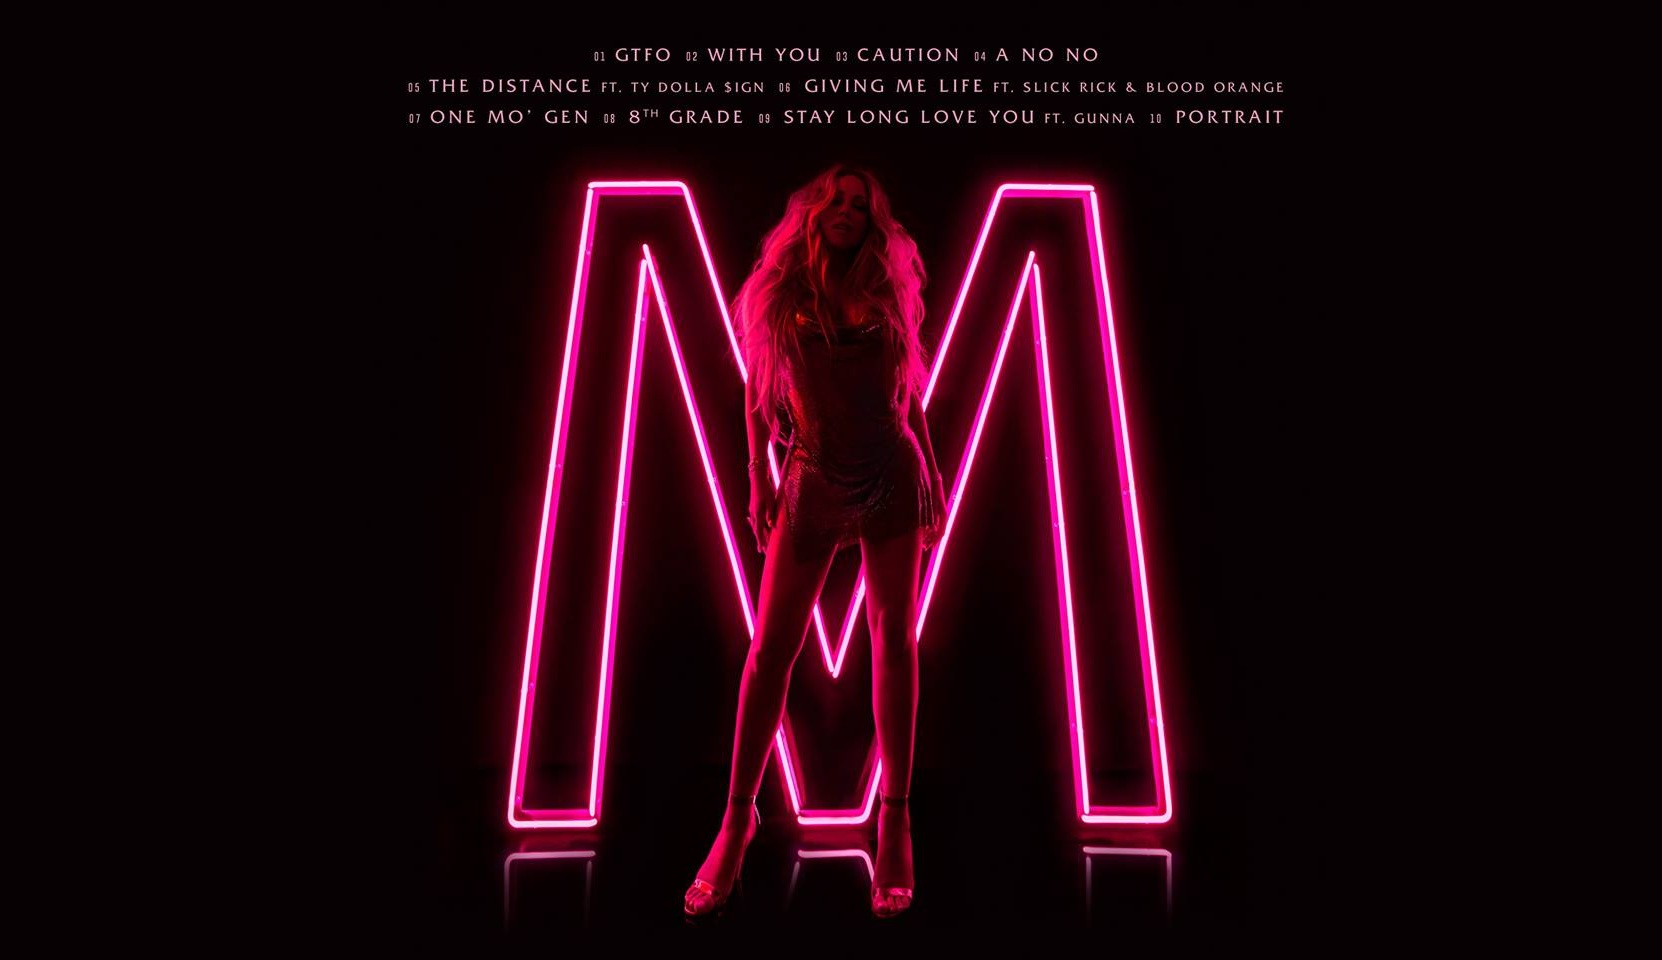 Revealed: The Complete Tracklist For Mariah Carey's New Album – 'Caution'